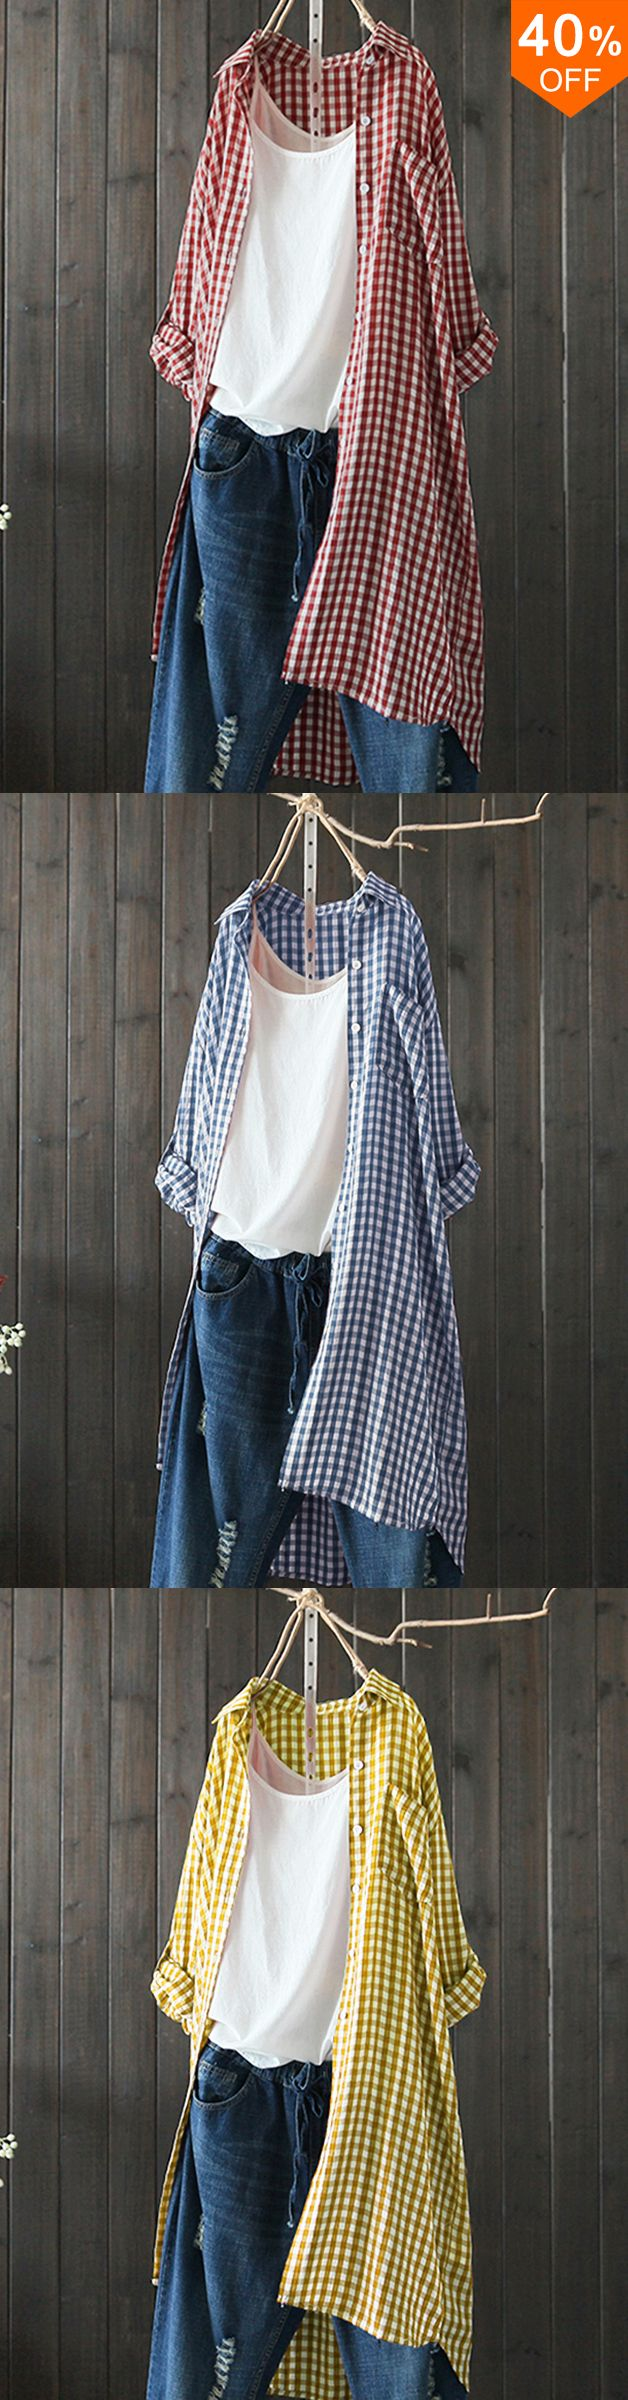 Amazing Up to 40% off&Free shipping.Casual Women Turn Down Collar Plaid Button Long Slee…